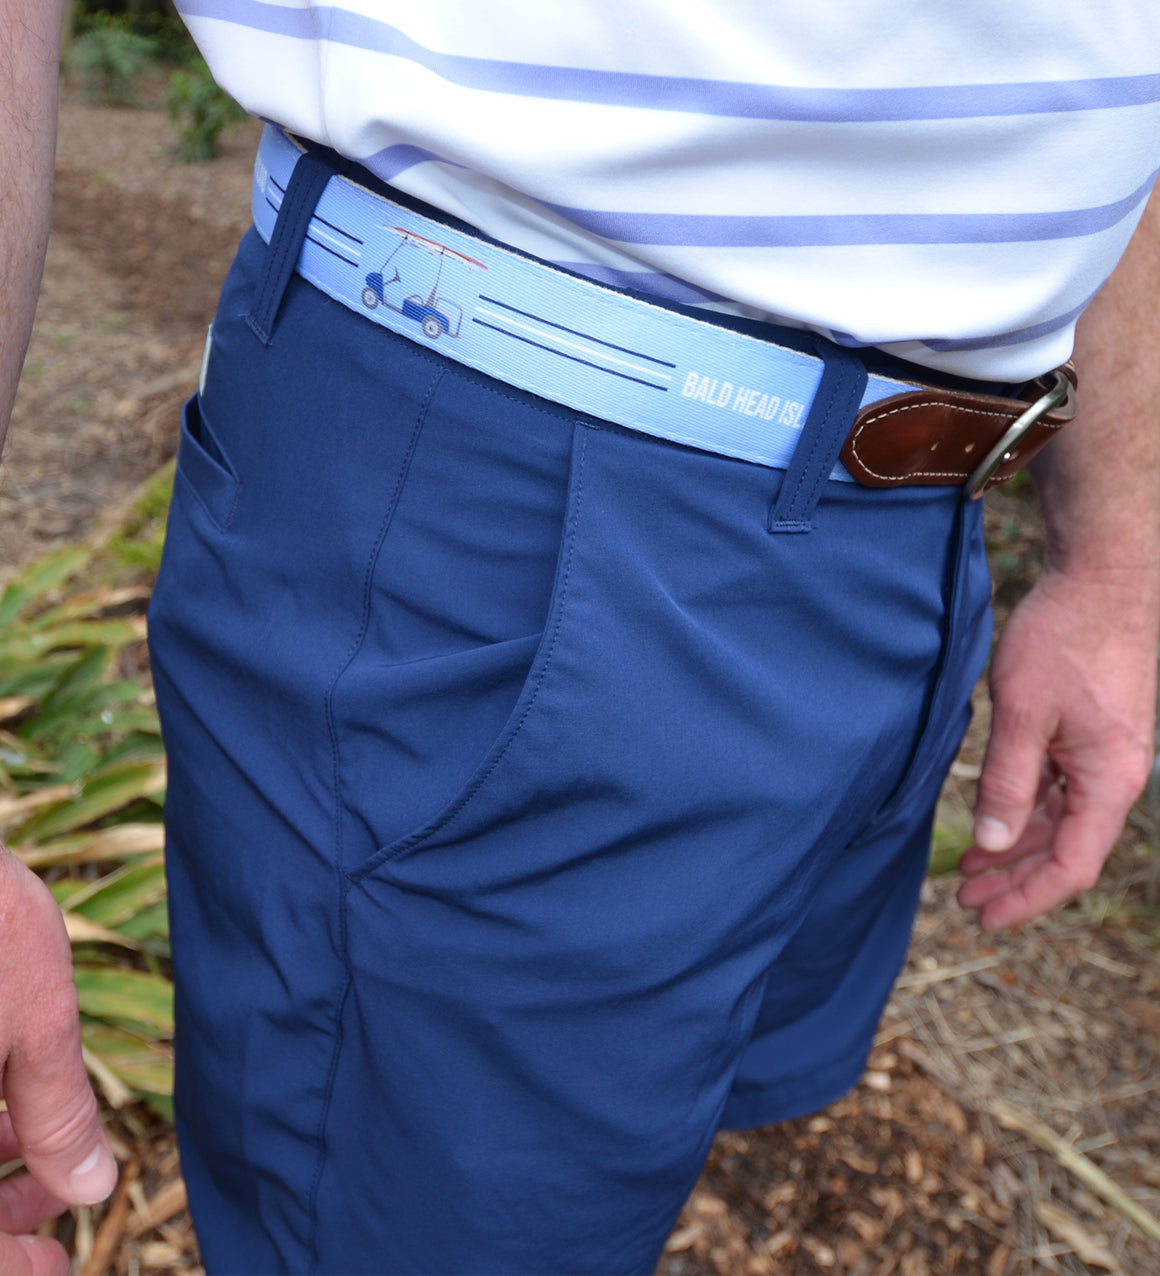 Printed Belt - Light Blue w/ Golf Cart